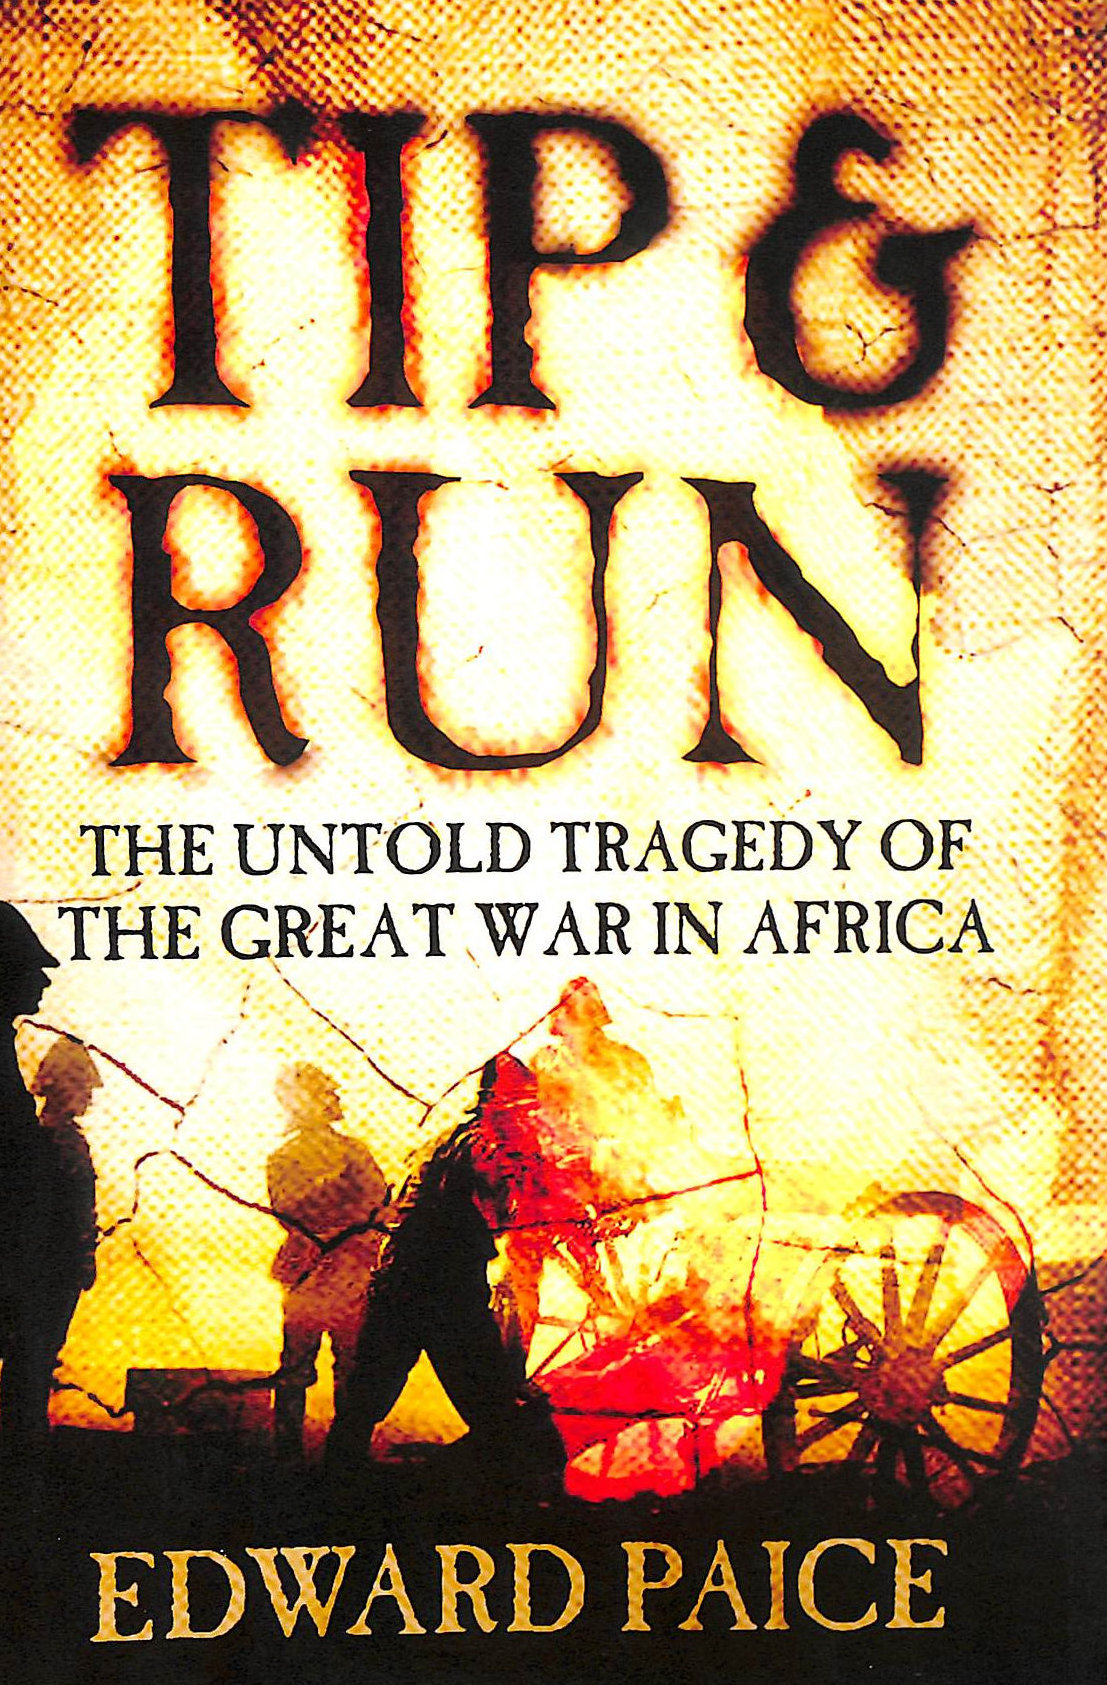 Image for Tip and Run: The Untold Tragedy of the Great War in Africa